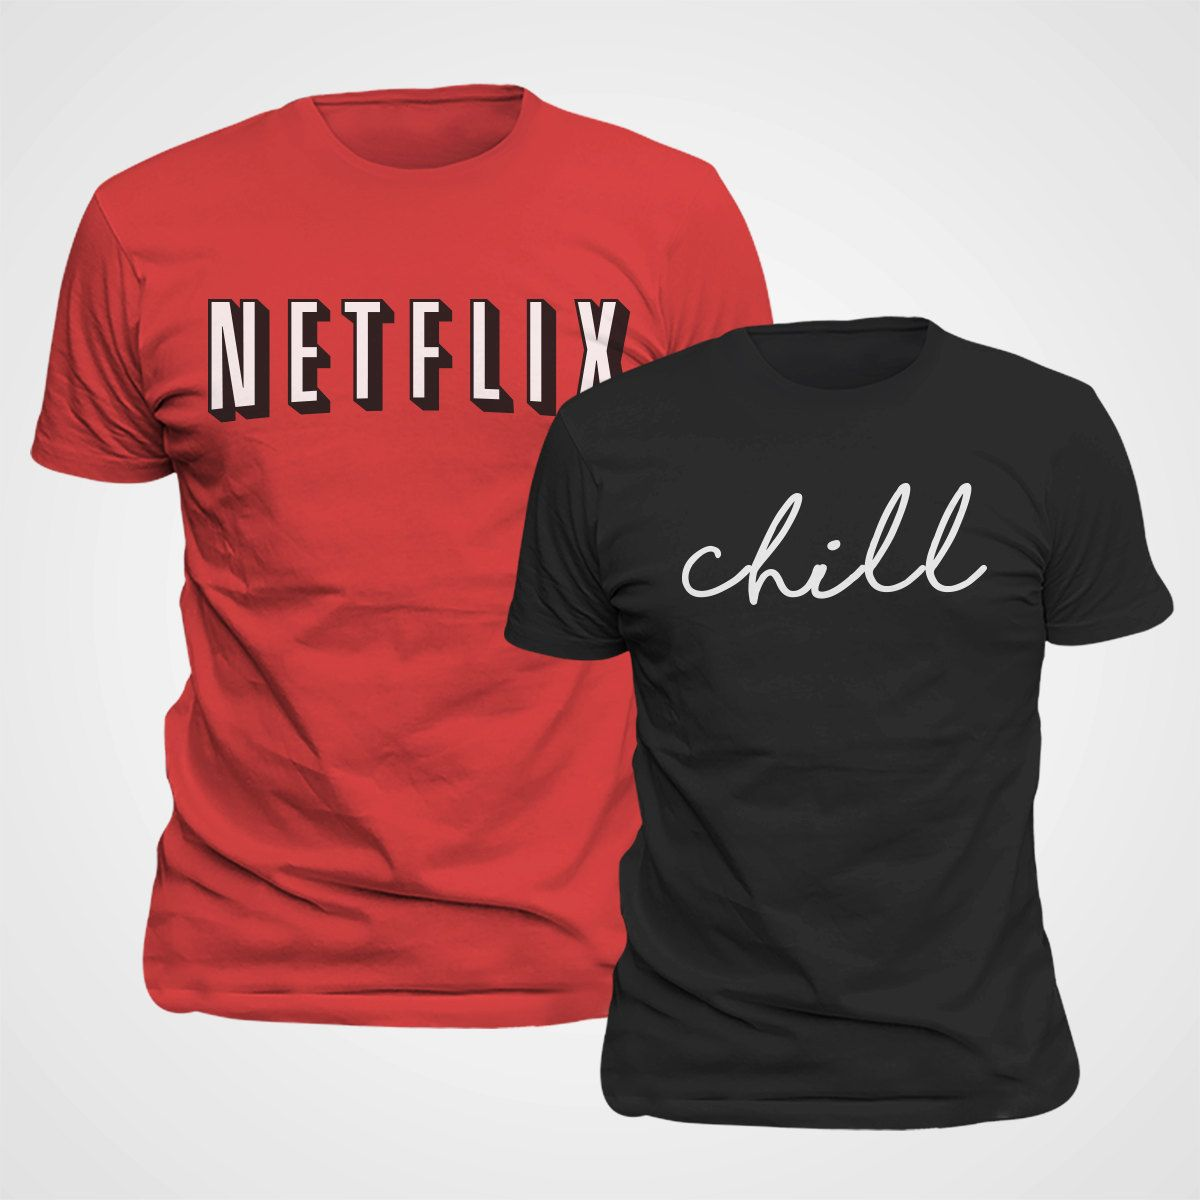 d0ac3b500 Netflix & Chill Couples Matching Shirt Valentine Costume funny t shirts